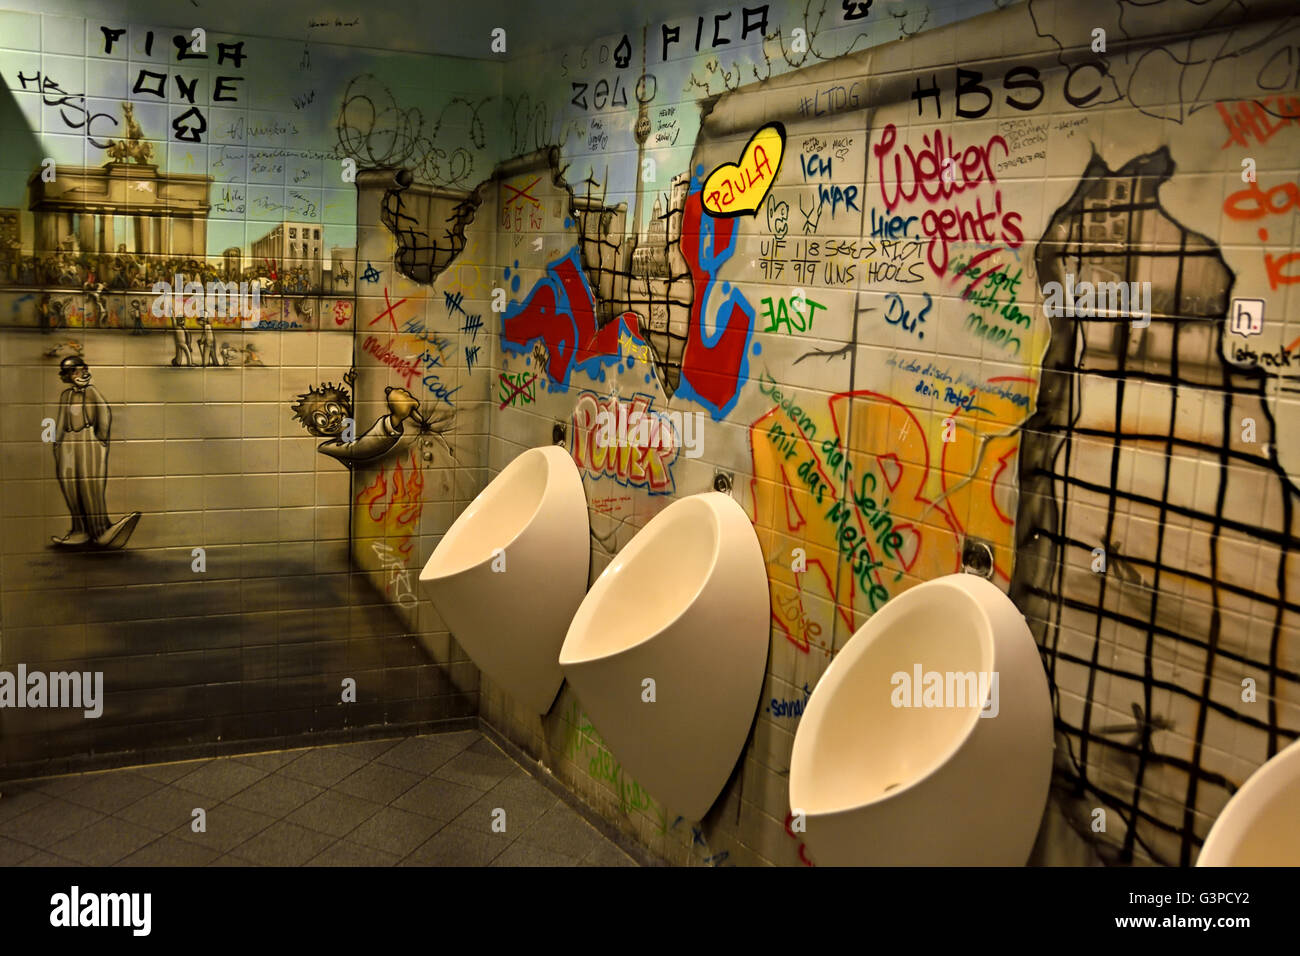 Graffiti wall painting - Graffiti Wall Painting Urinoir Urinal Toilet Berlin Germany